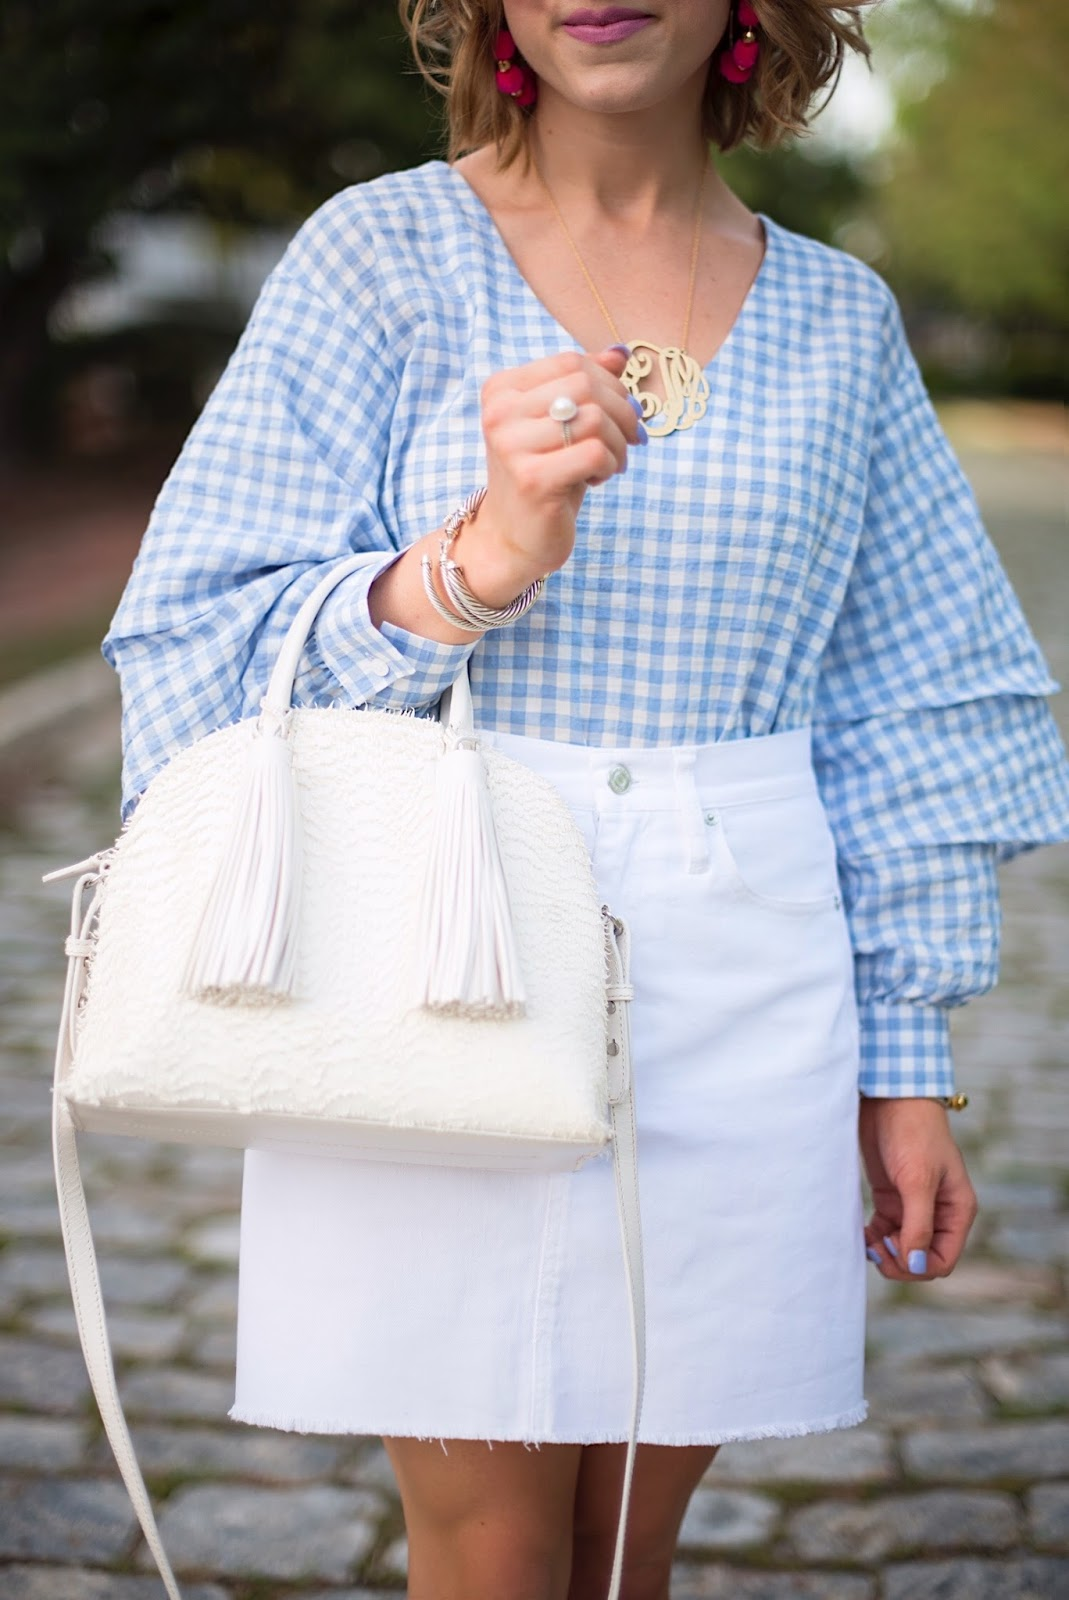 Gingham Ruffle Sleeve Top - Click through to see more on Something Delightful Blog